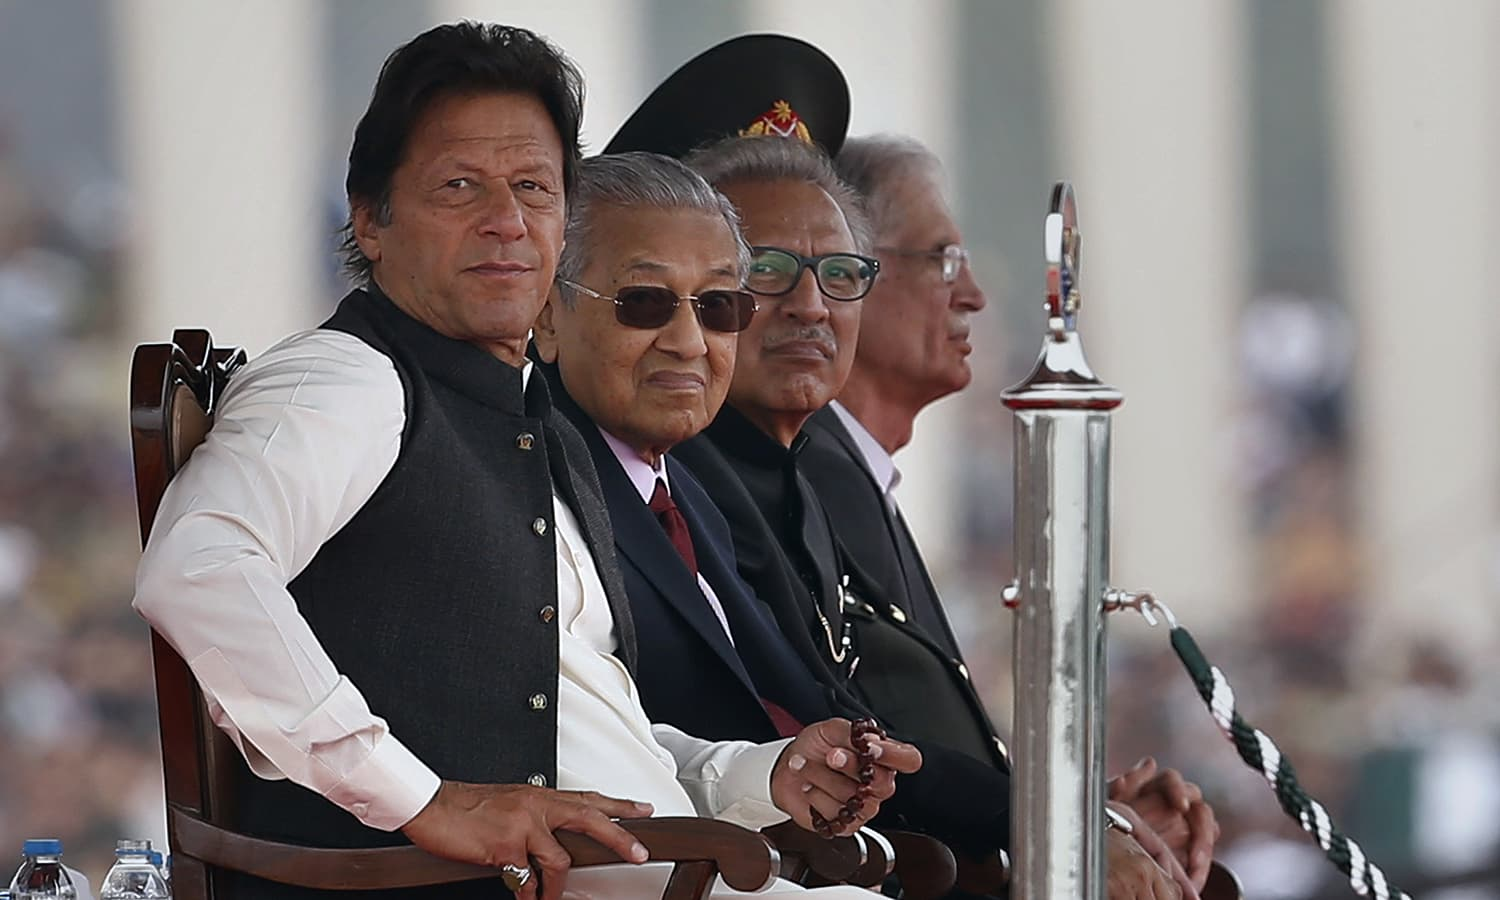 From left: Prime Minister Imran Khan, Malaysian Prime Minister Mahatir Mohamad, and President Arif Alvi attend the Pakistan Day military parade in Islamabad on March 23, 2019. ─ AP